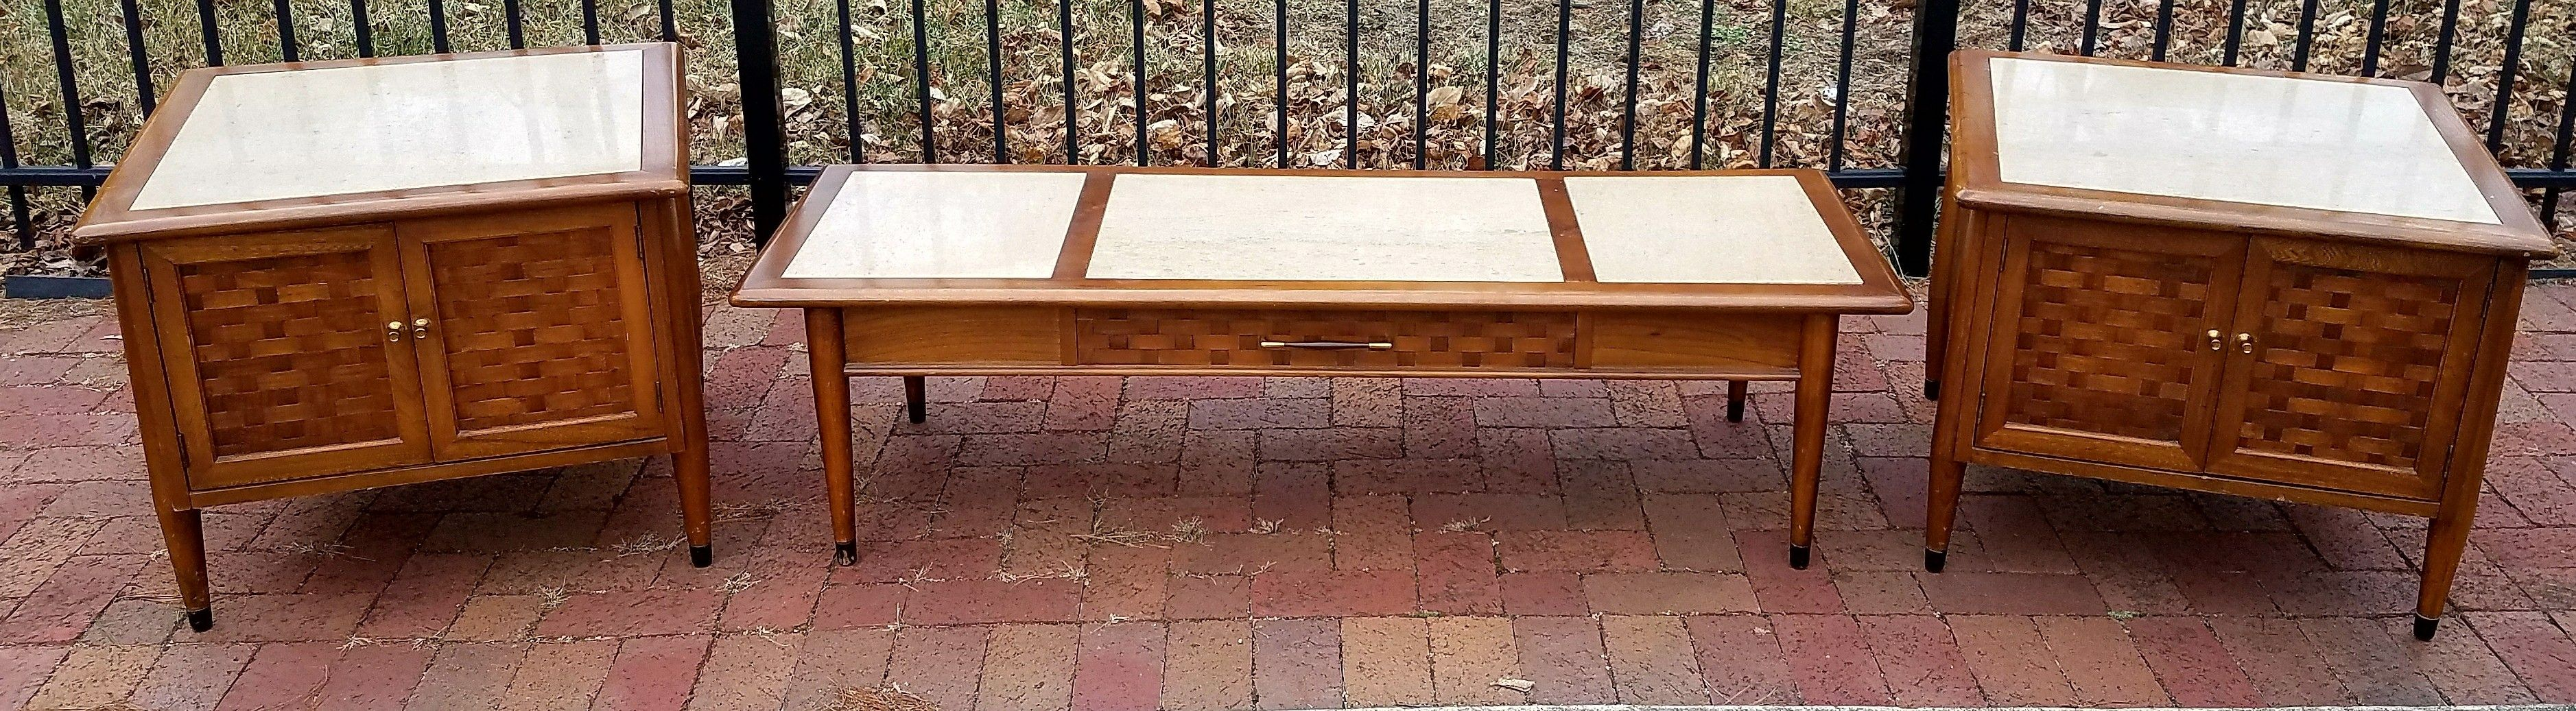 Mid Century Modern Mcm Coffee Table And 2 End Set In Walnut With